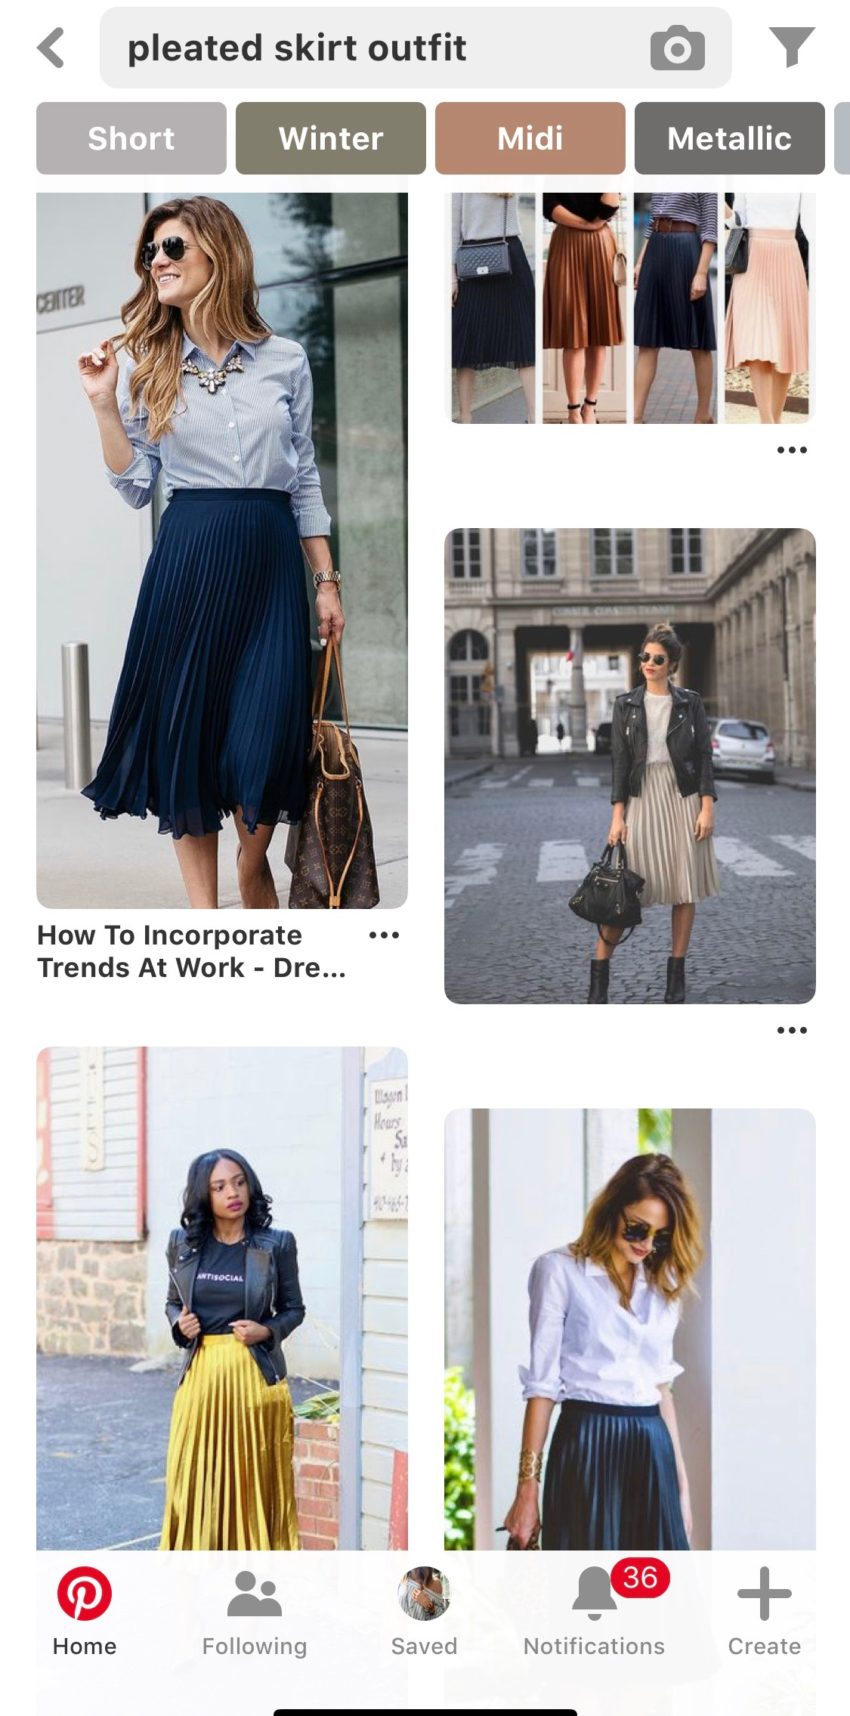 pinterest, board, pin, style, method39, find your style, inspiration, patterns, search, find your style, over 40